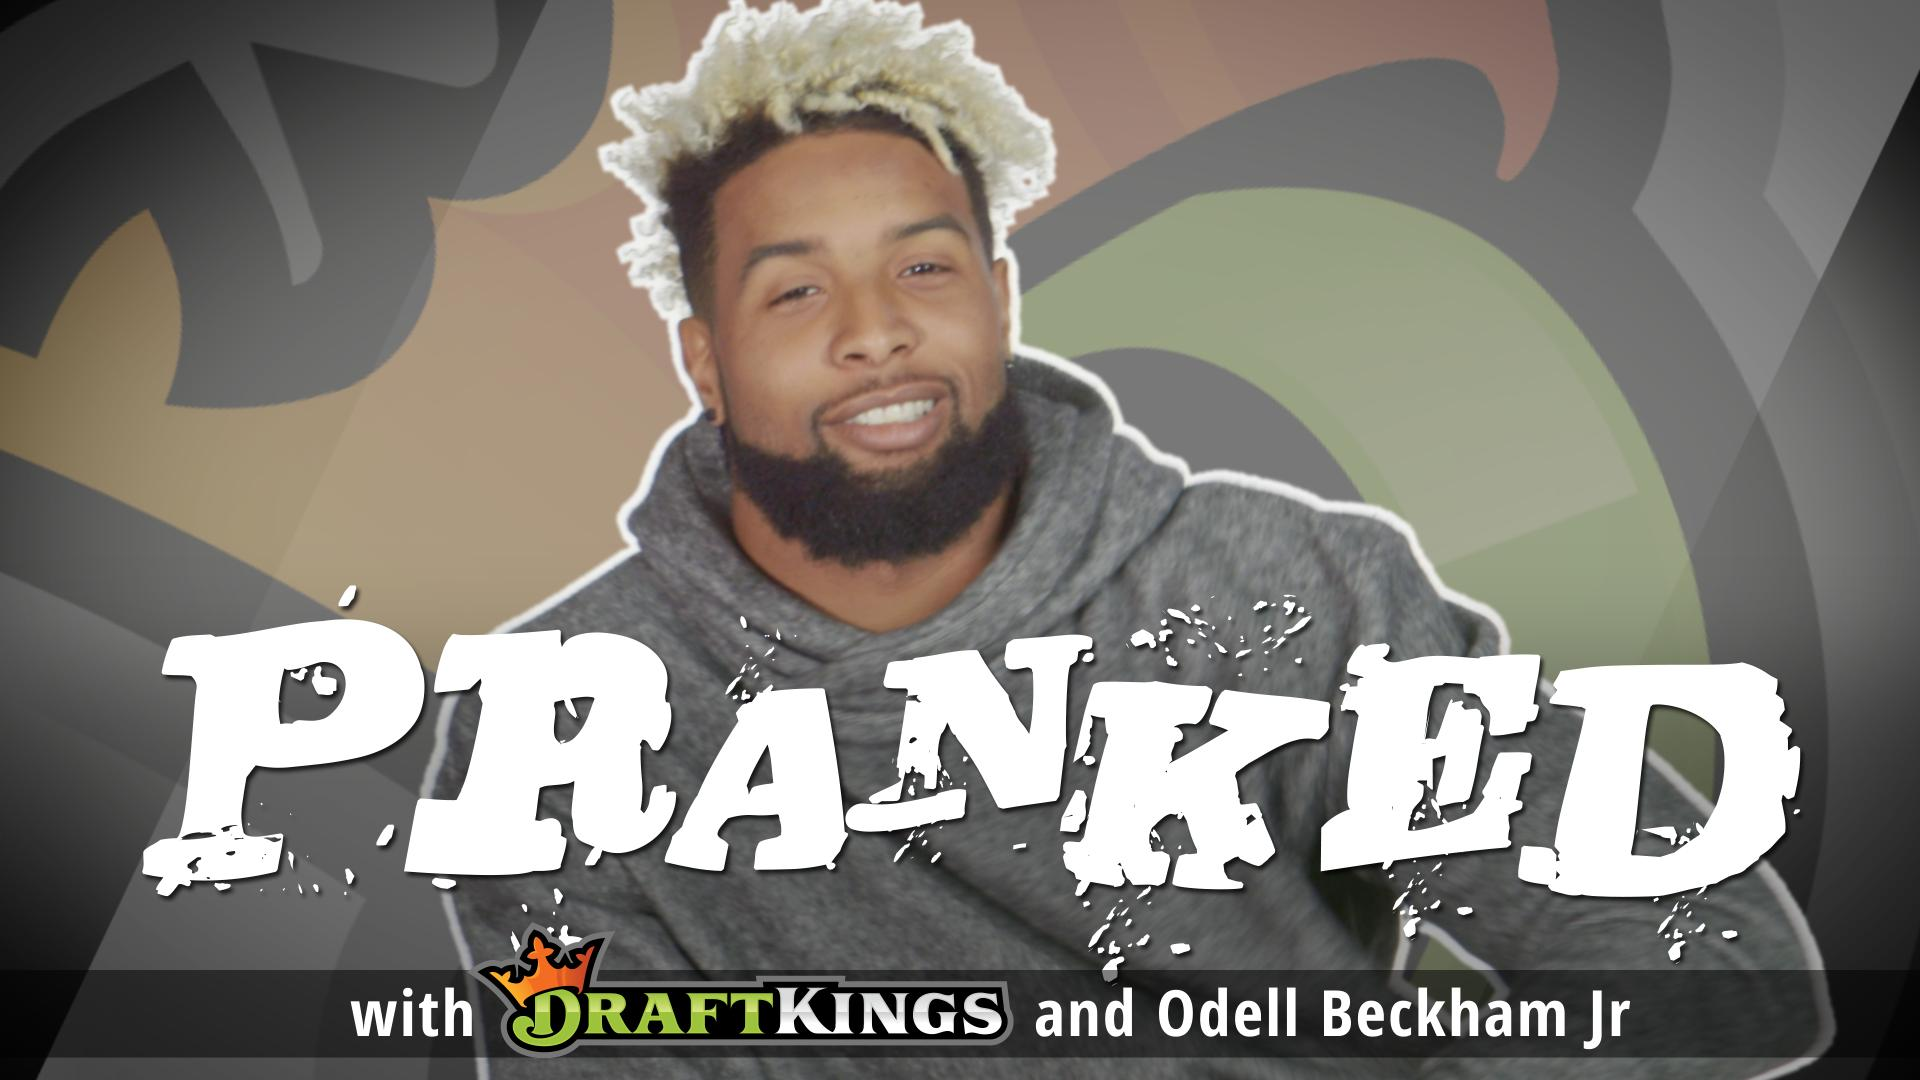 Dktv pranked fake injury freakout with odell beckham jr pranked fake injury freakout with odell beckham jr m4hsunfo